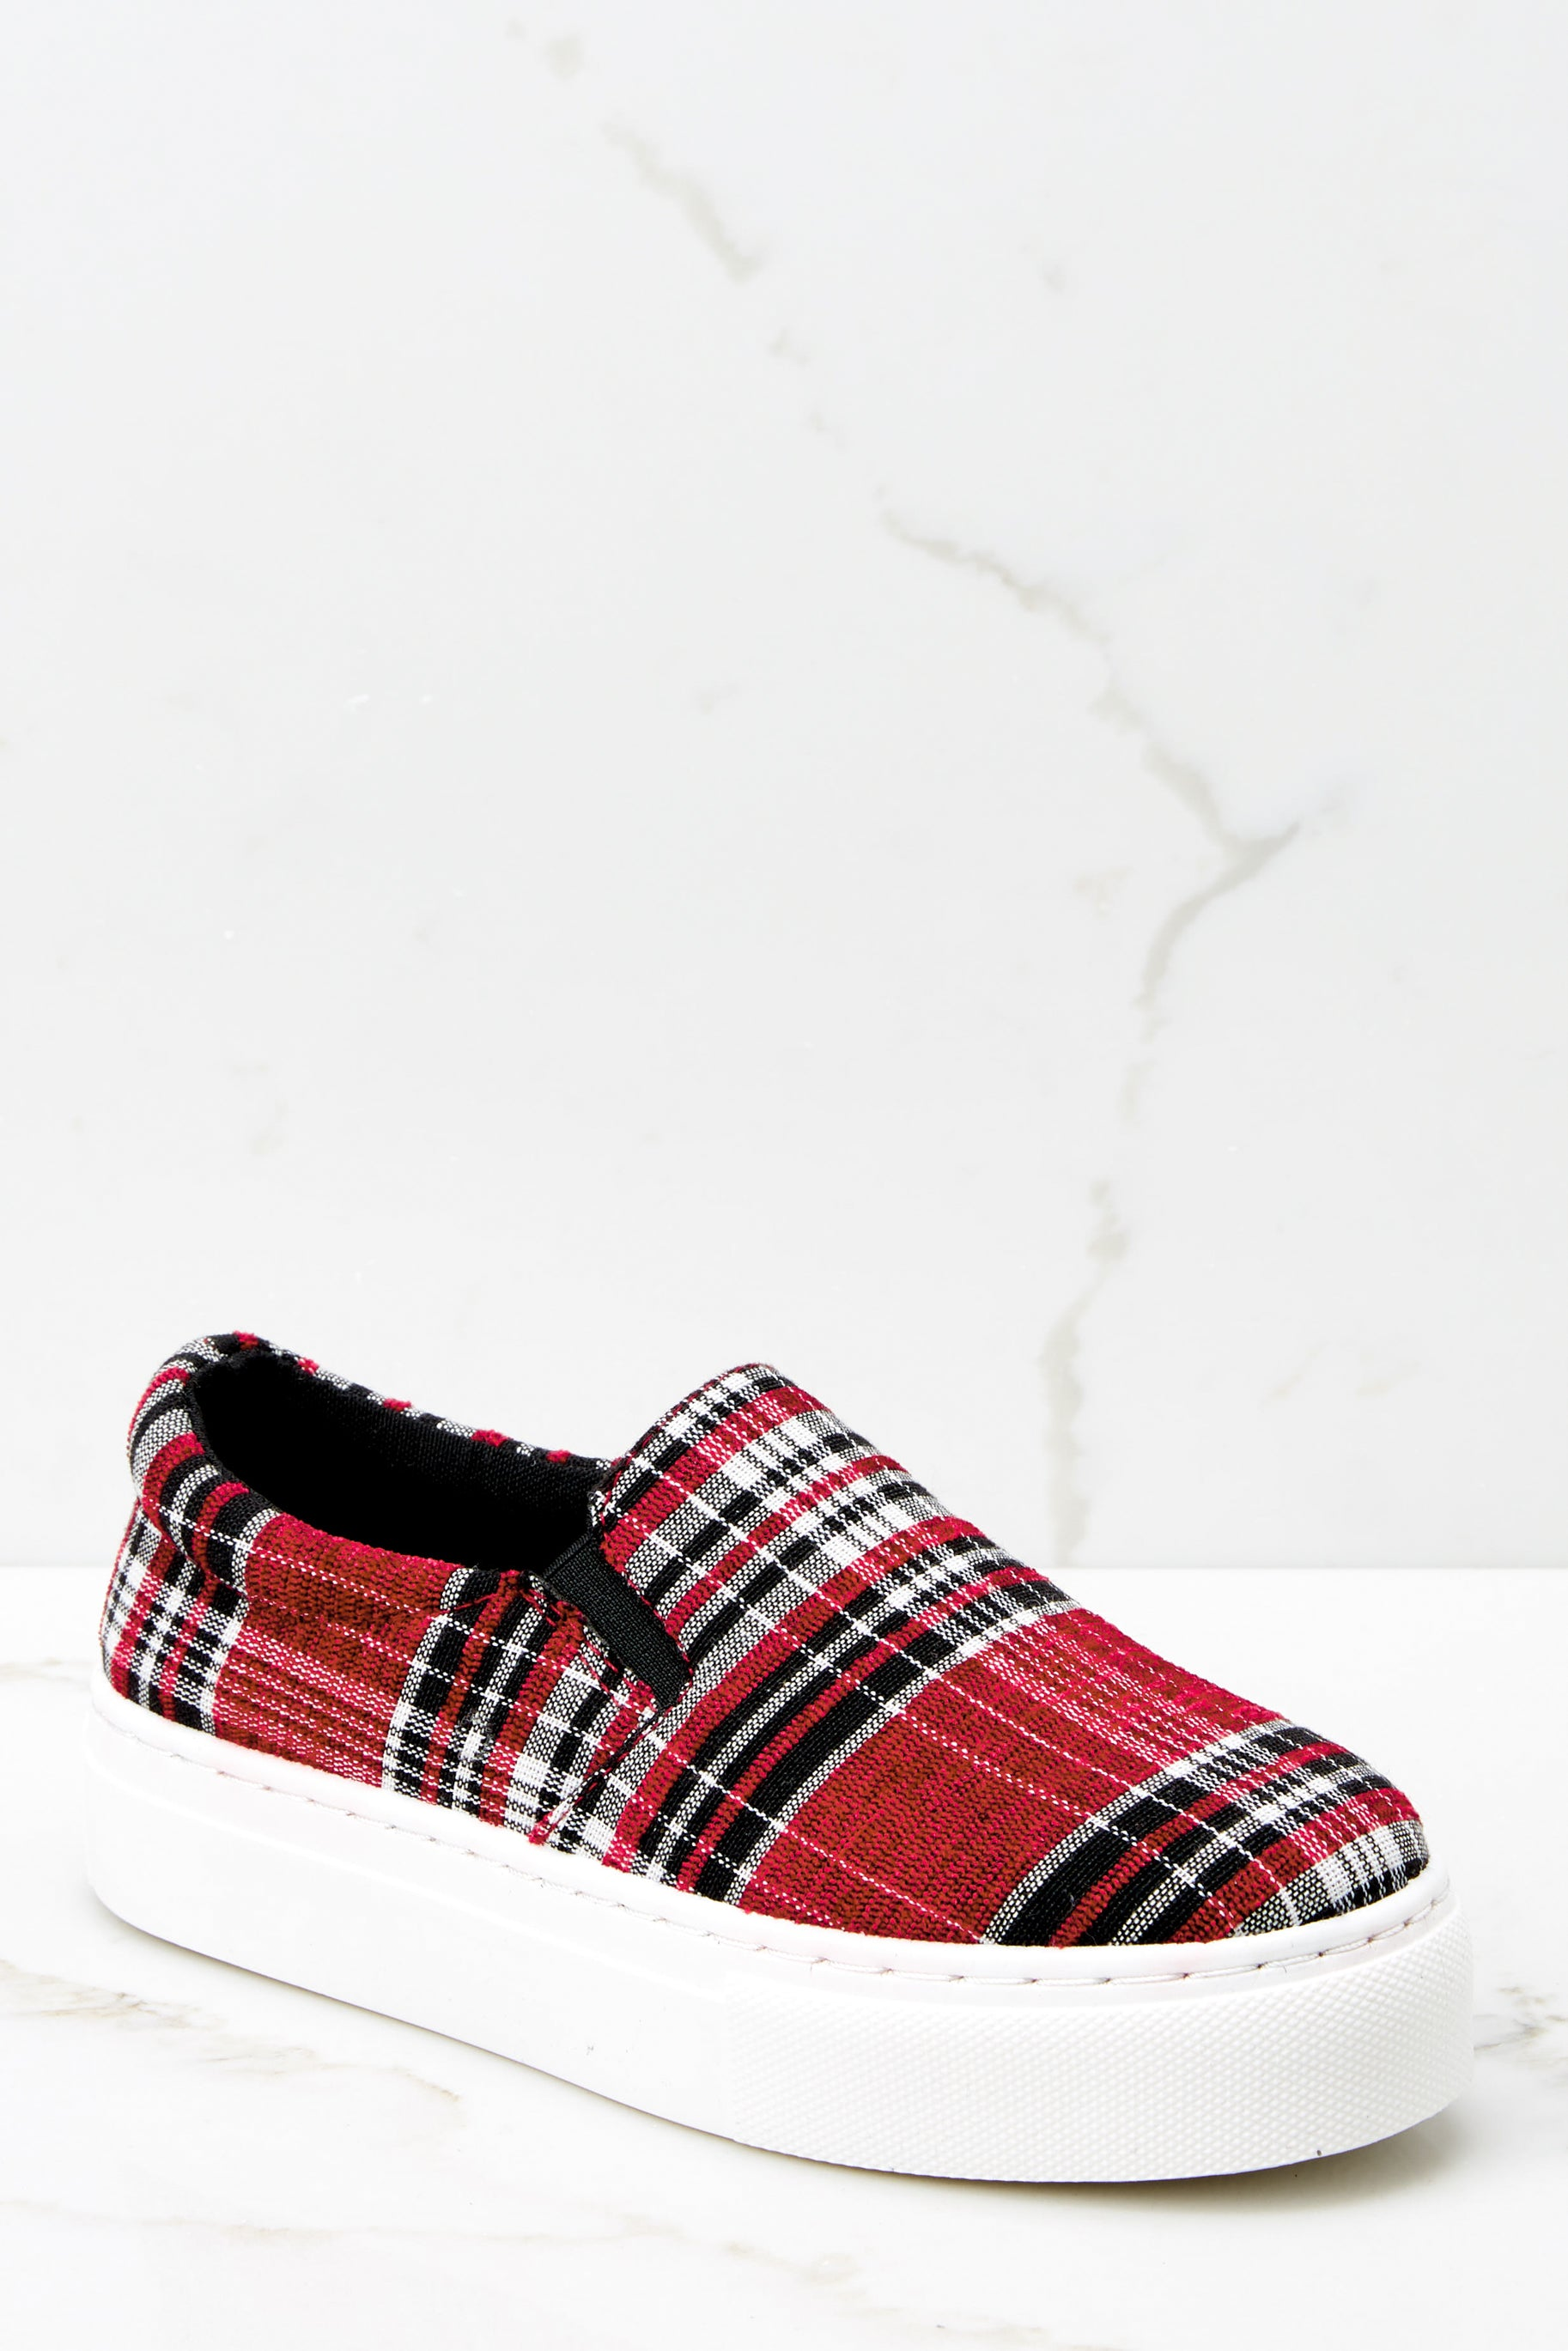 1 Plaid My Way Red Multi Plaid Slip On Sneakers at reddressboutique.com